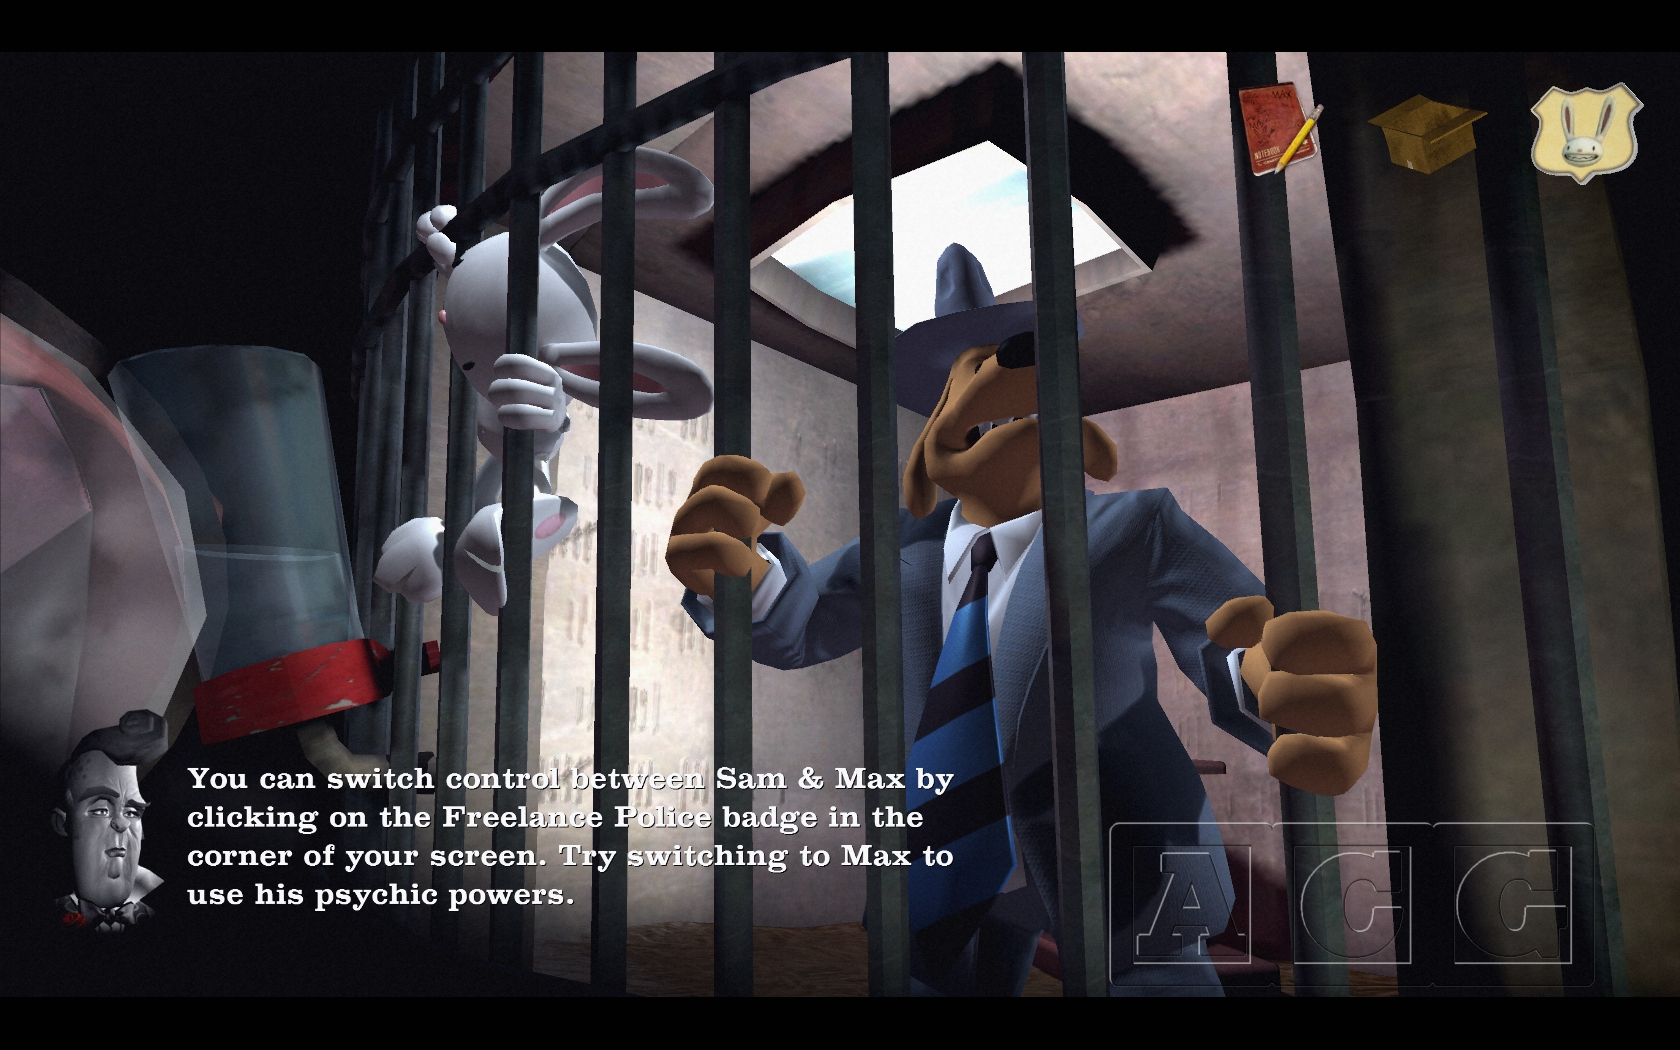 Sam & Max The Devil's Playhouse Episode 301: The Penal Zone